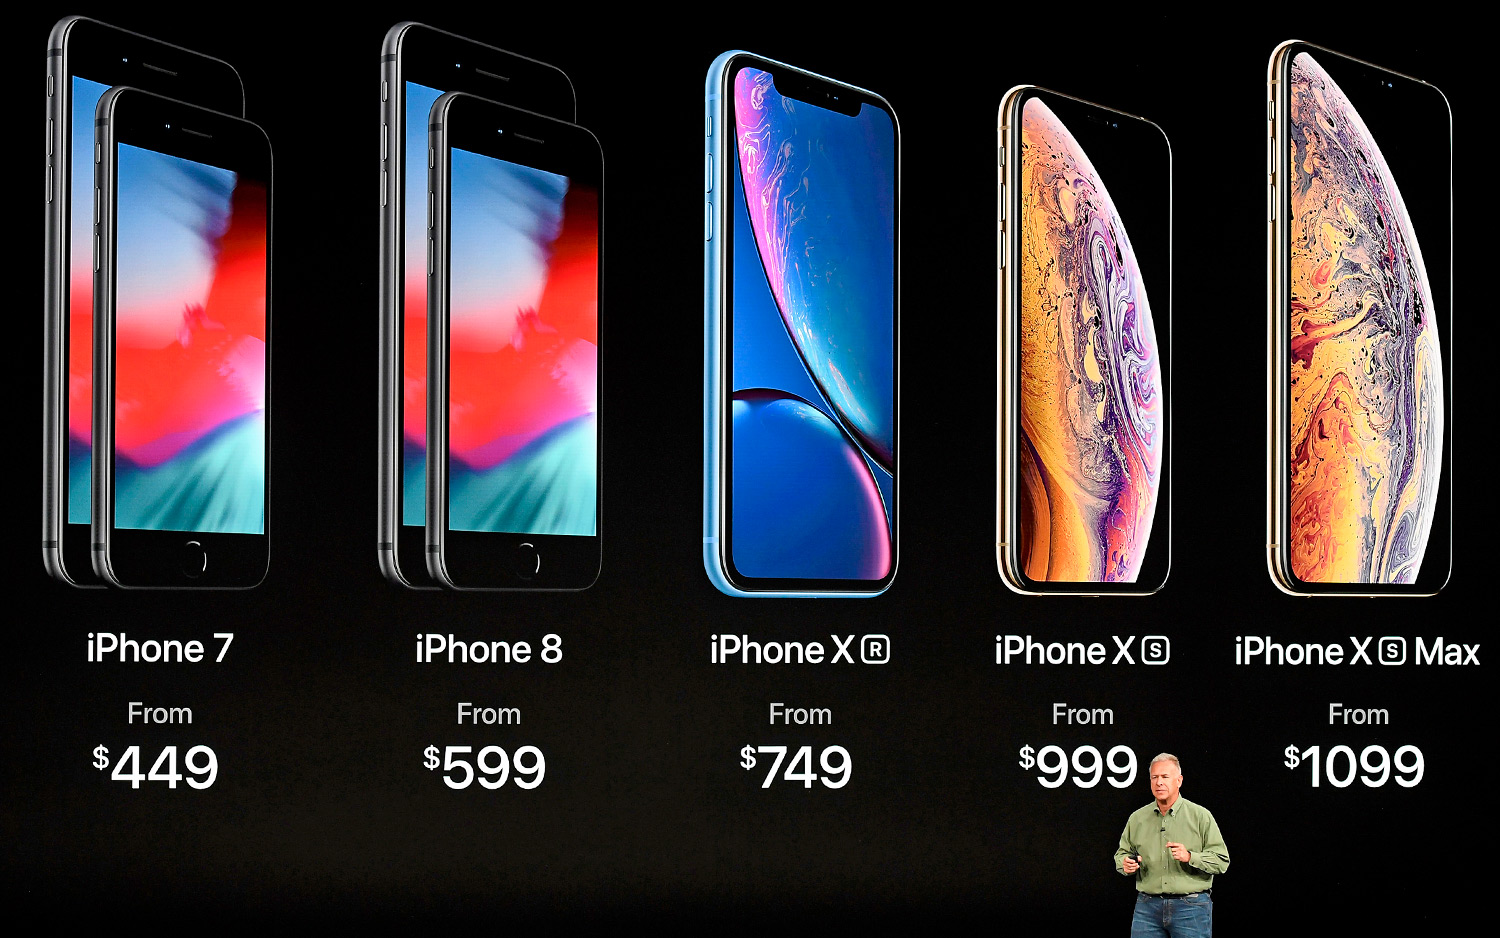 iPhone Price Comparison: Here's How Much Every iPhone Costs